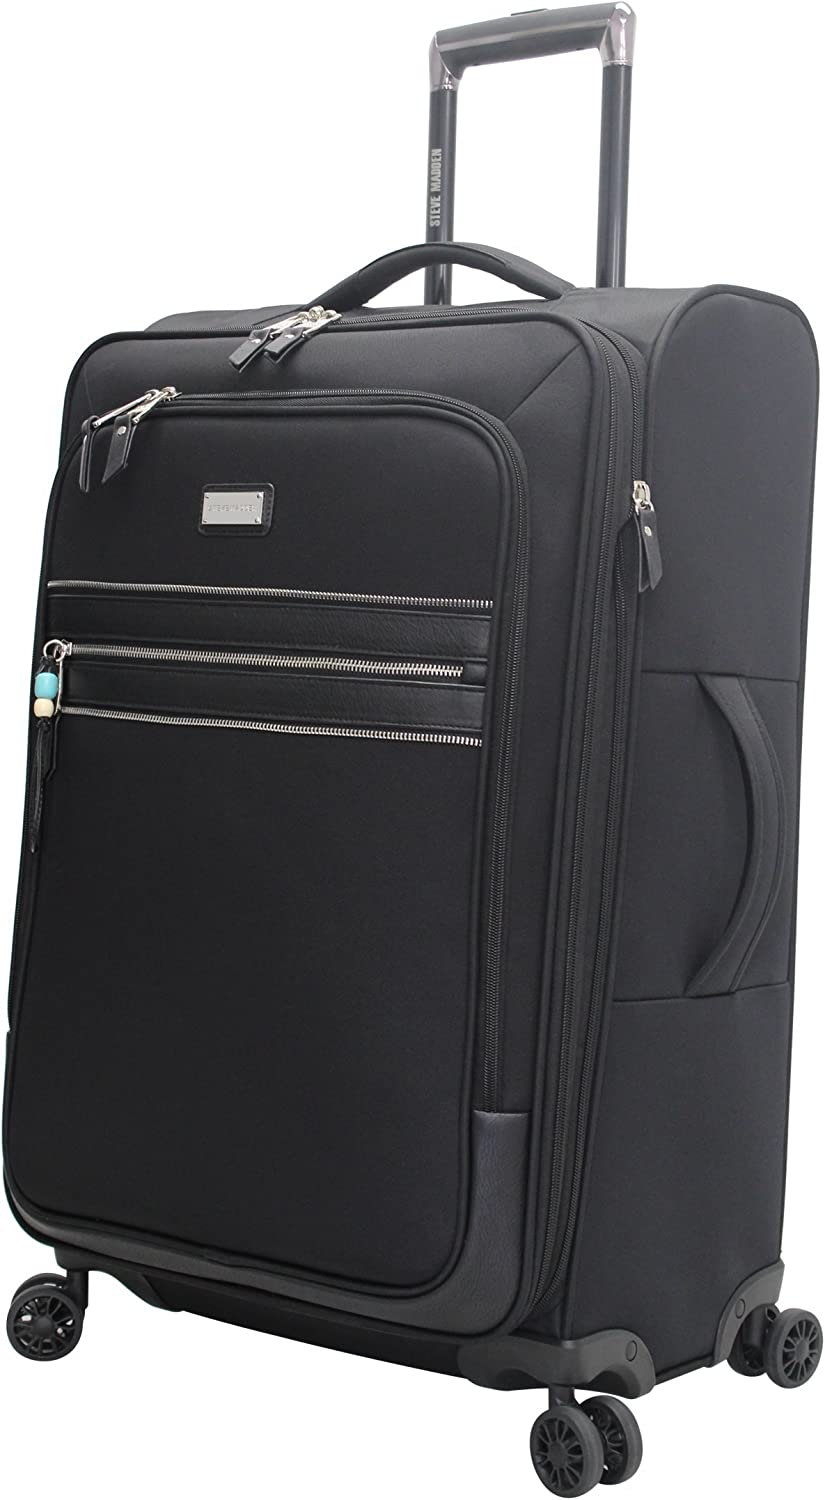 Steve Madden Large Patchwork Expandable Luggage With Spinner Wheels